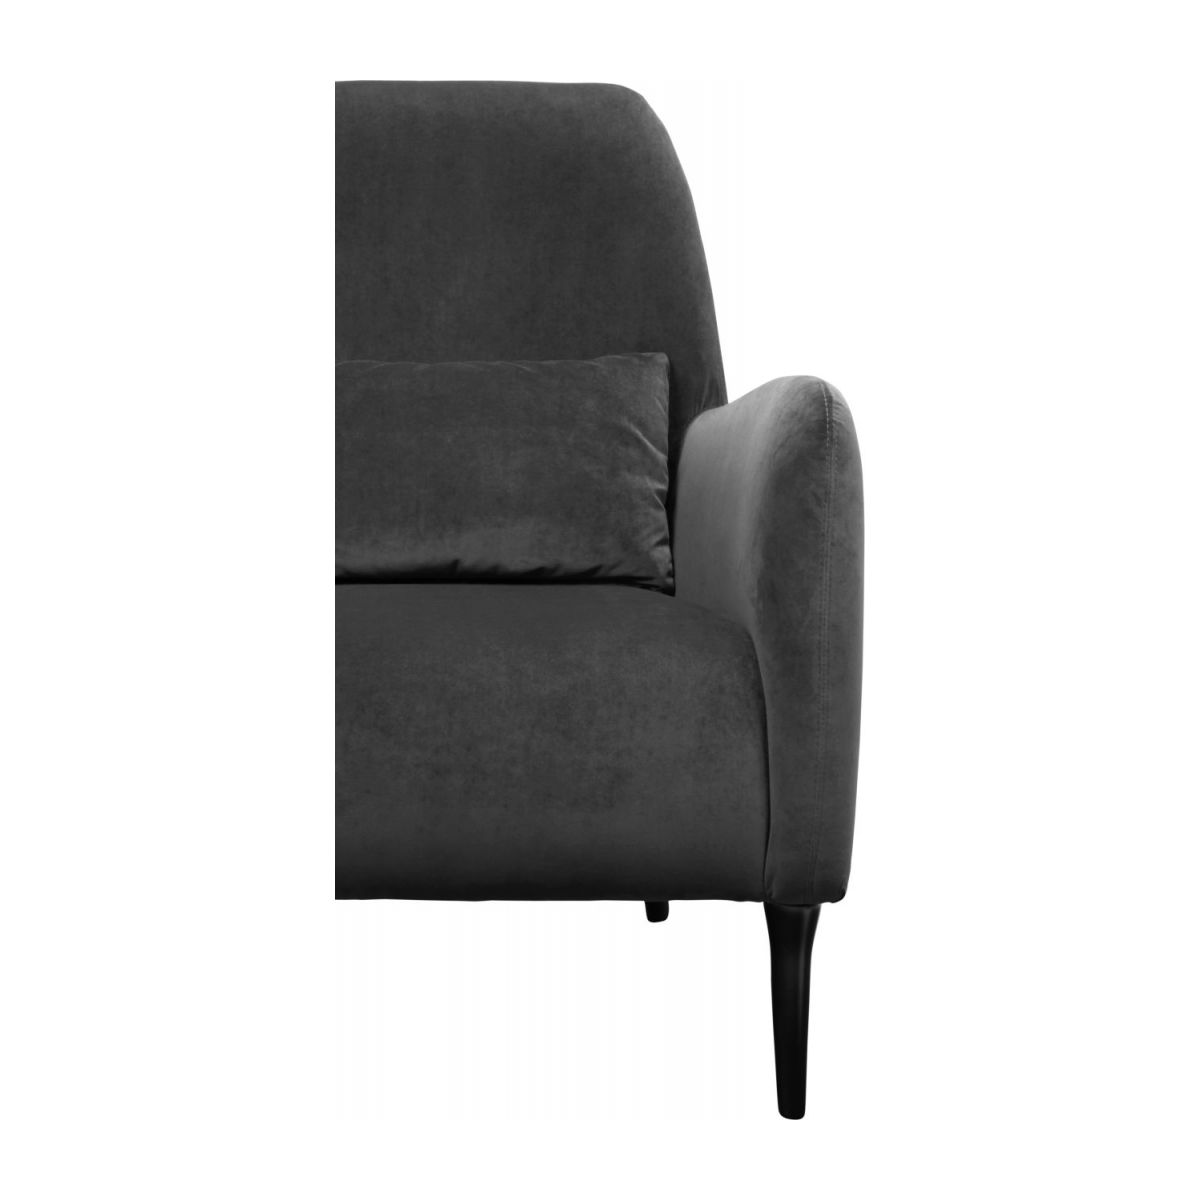 Velvet armchair, grey n°5